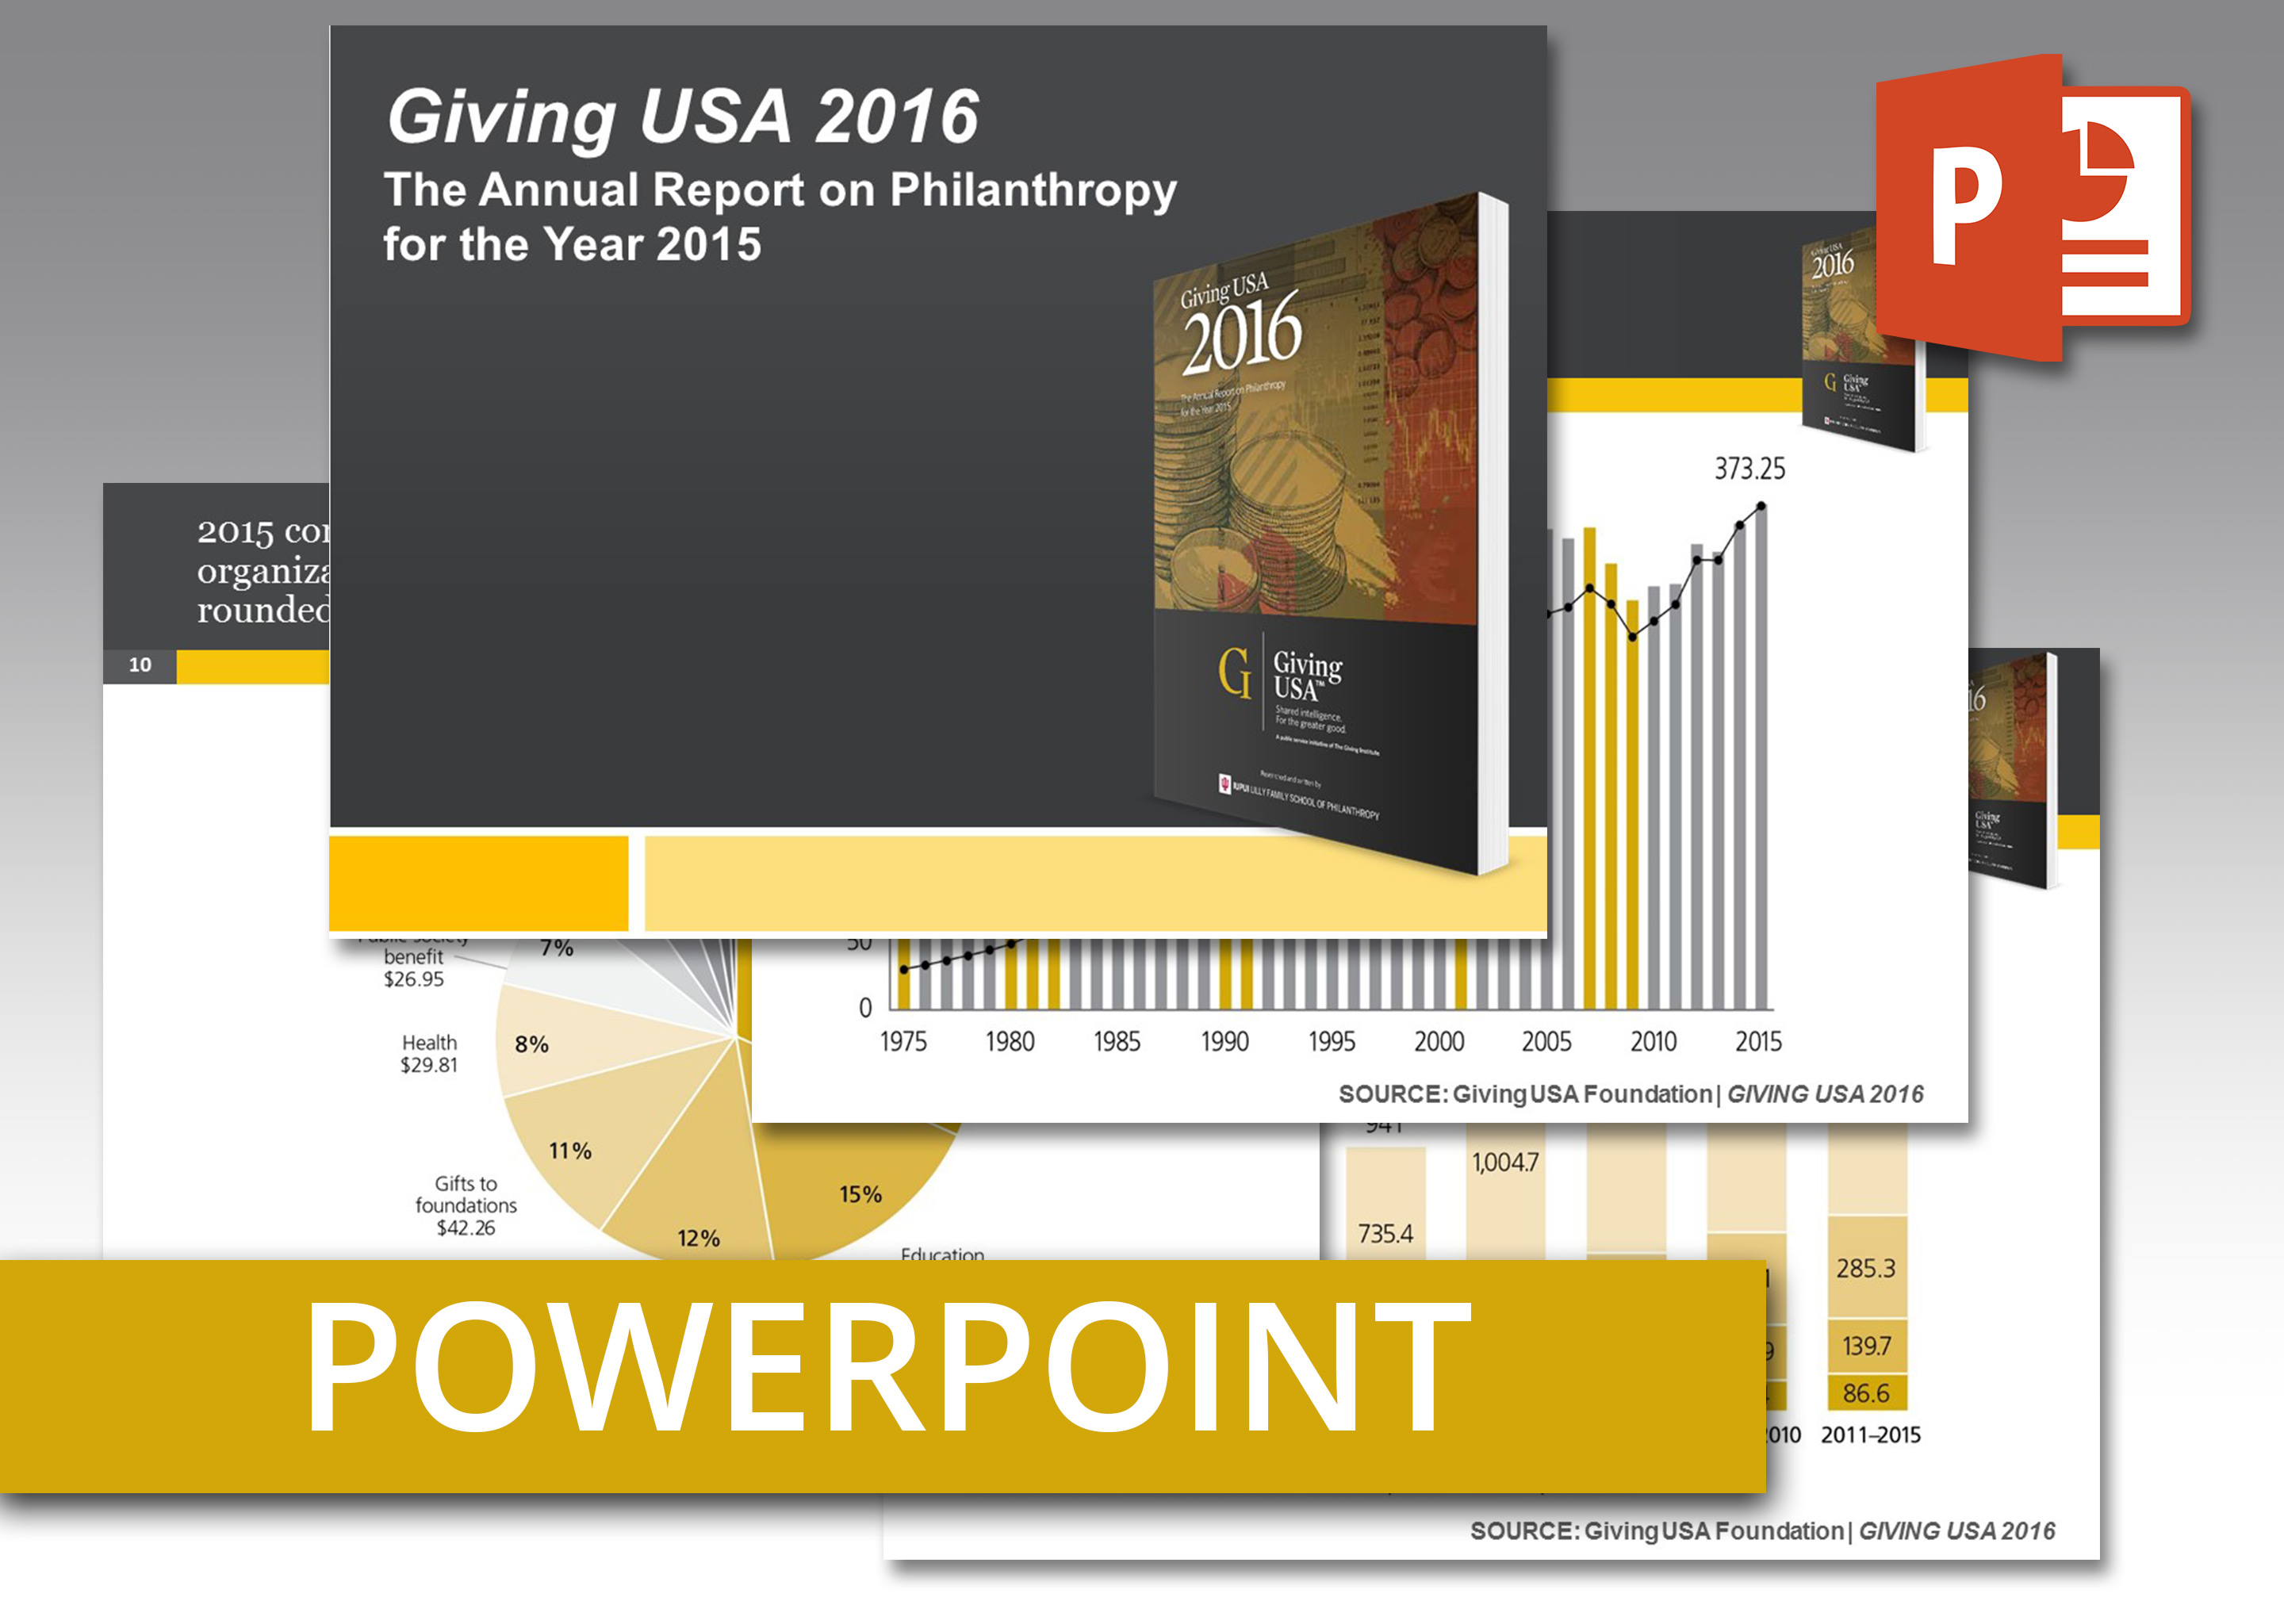 Coolmathgamesus  Sweet Giving Usa  Powerpoint An Easytouse Presentation Of Report  With Magnificent Giving Usa  Powerpoint An Easytouse Presentation Of Report Findings Including Talking Points With Archaic School Powerpoint Background Also How To Make Charts In Powerpoint In Addition Powerpoint Presentation Introduction Slide And Iep Powerpoint As Well As Graduation Powerpoint Background Additionally Continents Powerpoint From Givingusaorg With Coolmathgamesus  Magnificent Giving Usa  Powerpoint An Easytouse Presentation Of Report  With Archaic Giving Usa  Powerpoint An Easytouse Presentation Of Report Findings Including Talking Points And Sweet School Powerpoint Background Also How To Make Charts In Powerpoint In Addition Powerpoint Presentation Introduction Slide From Givingusaorg